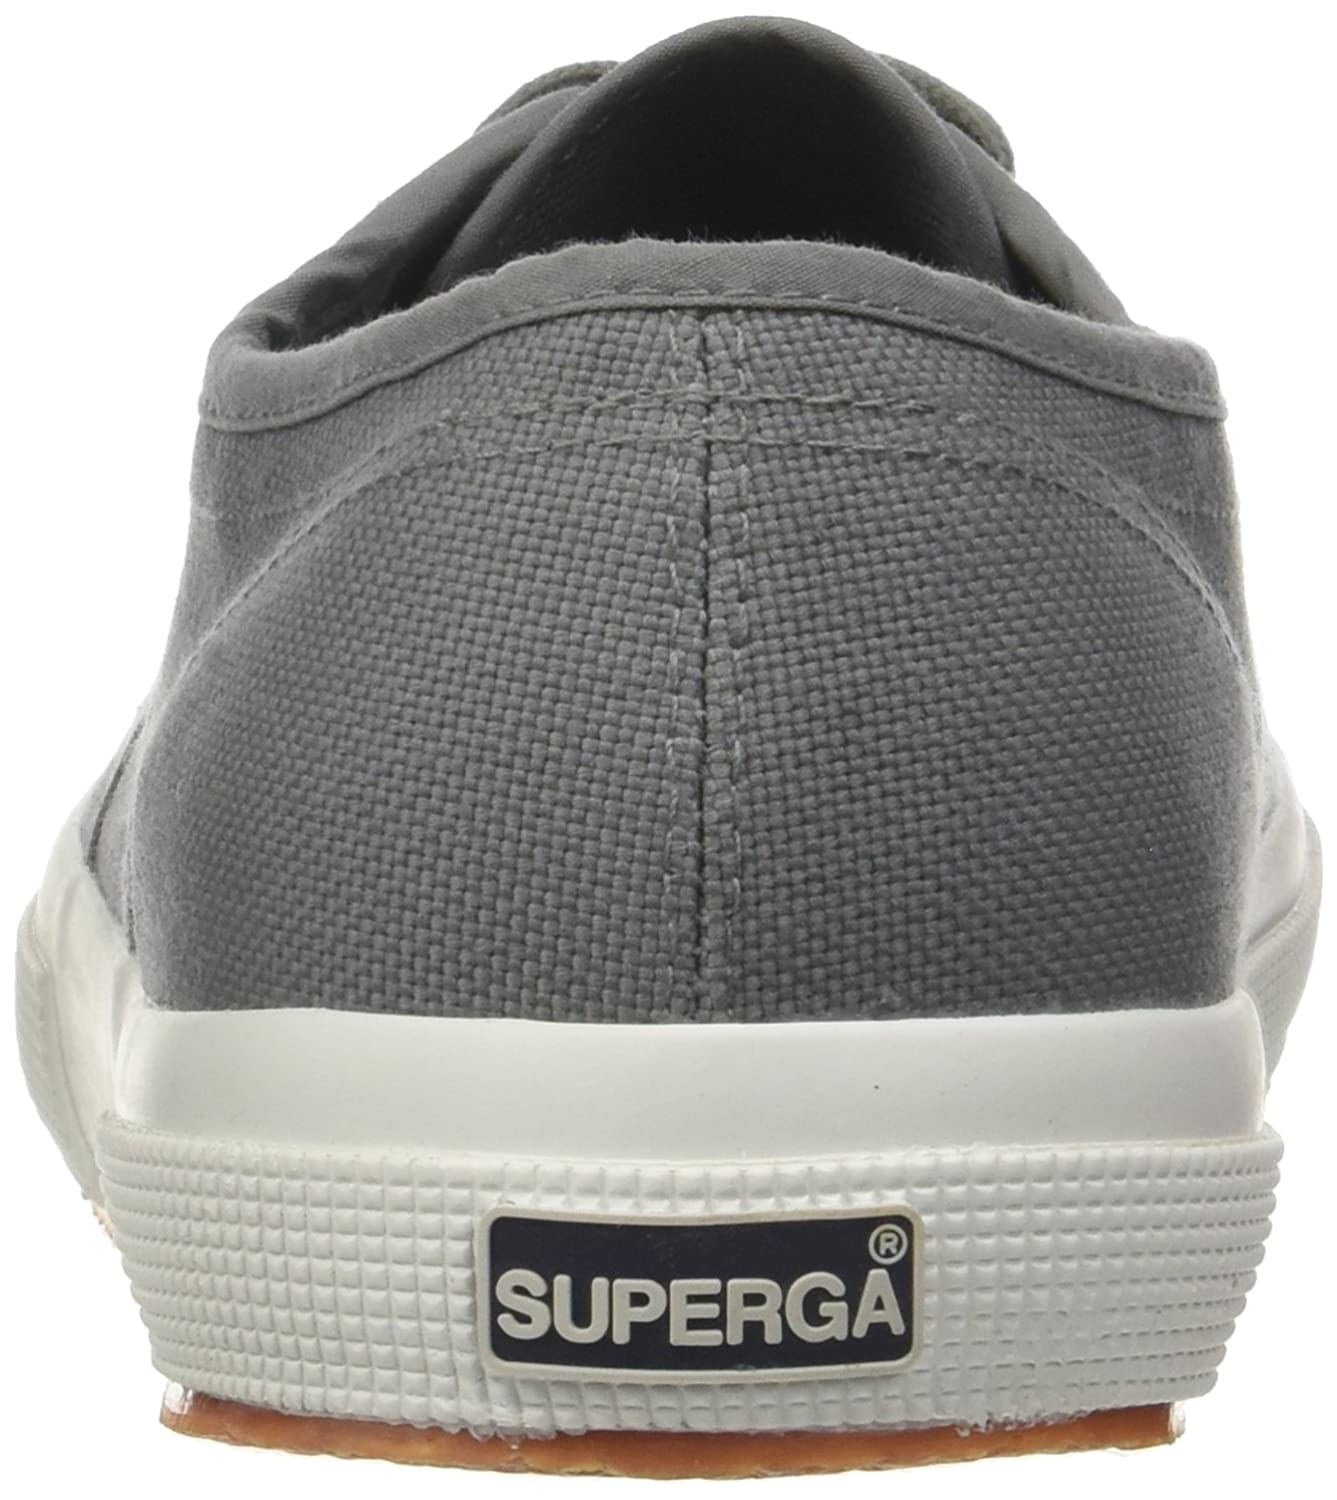 Superga B002WGIY1W Women's 2750 Cotu Sneaker B002WGIY1W Superga UK9 EU43 US10|Grey Dk Sage 8de077